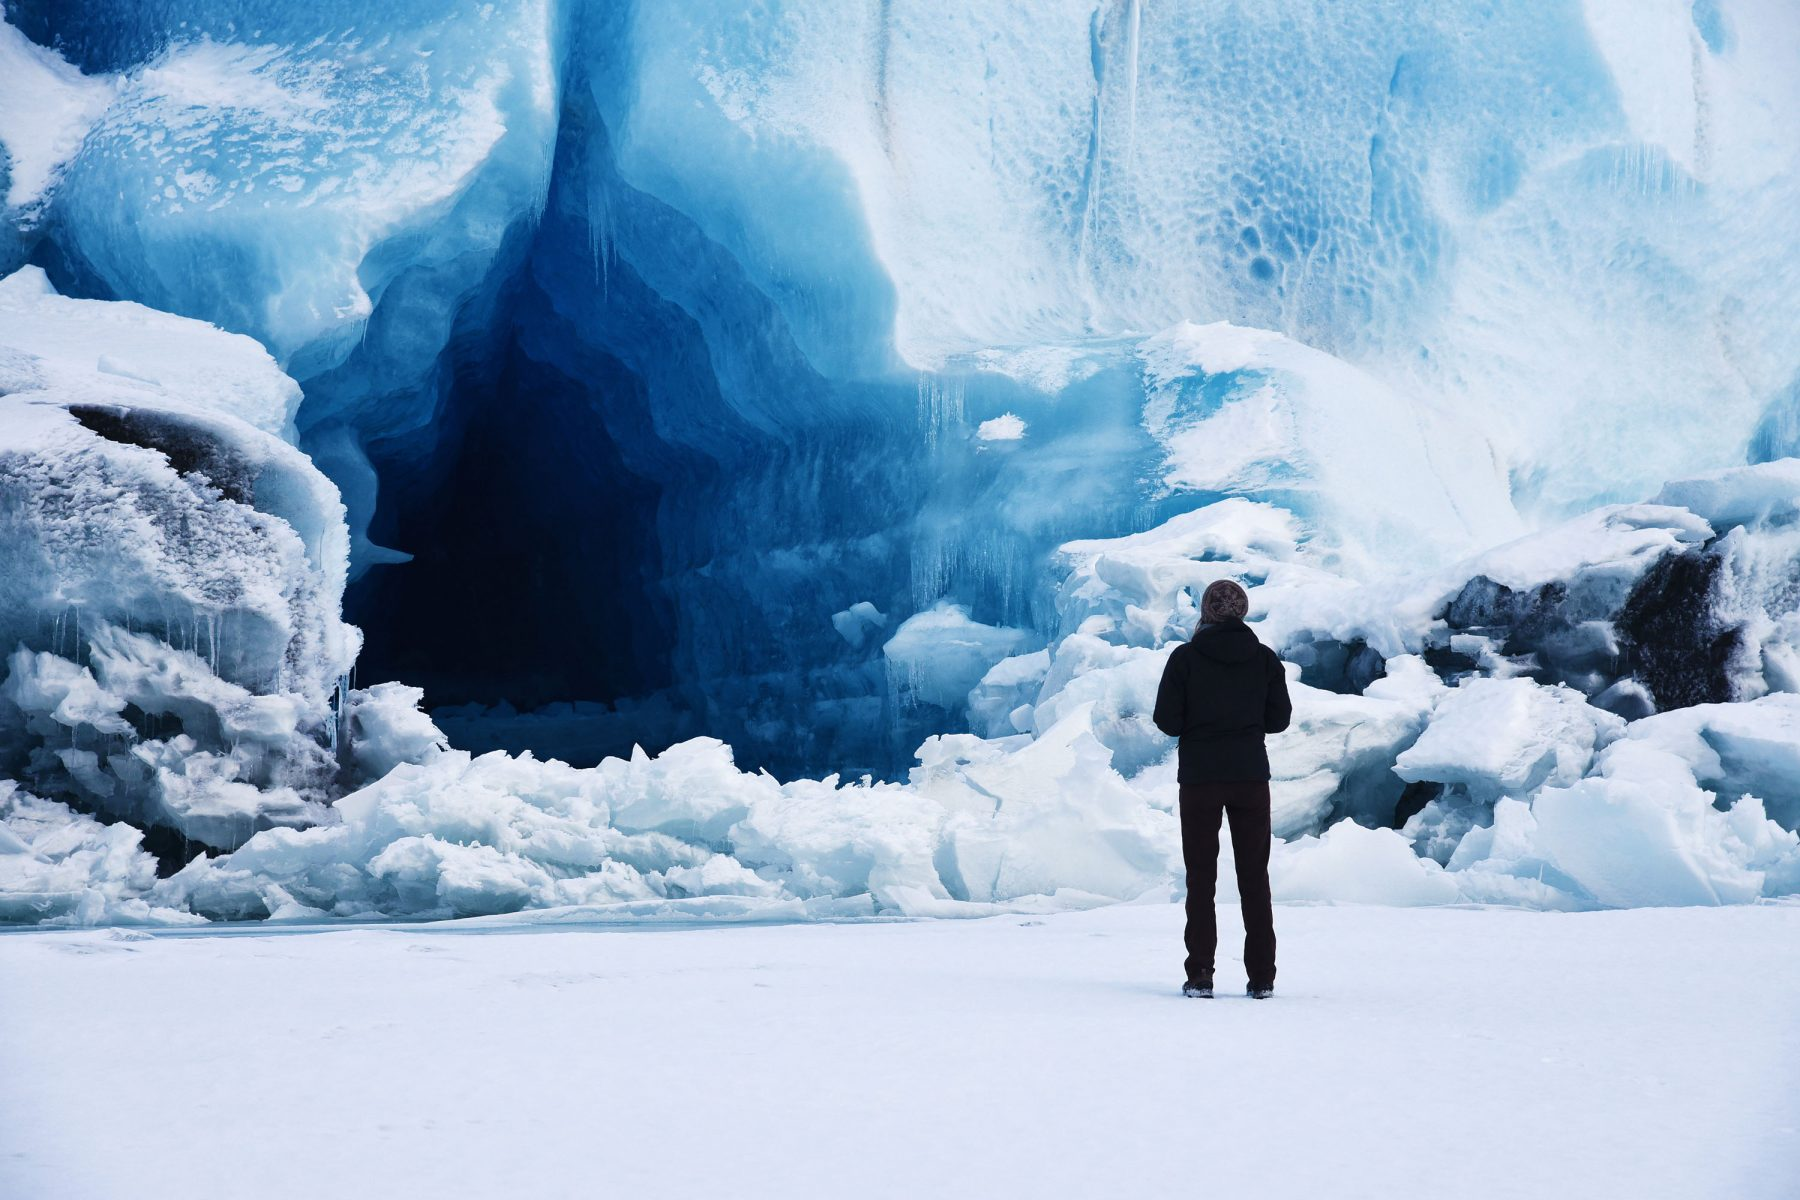 Cori standing outside a blue ice cave on Knik Glacier